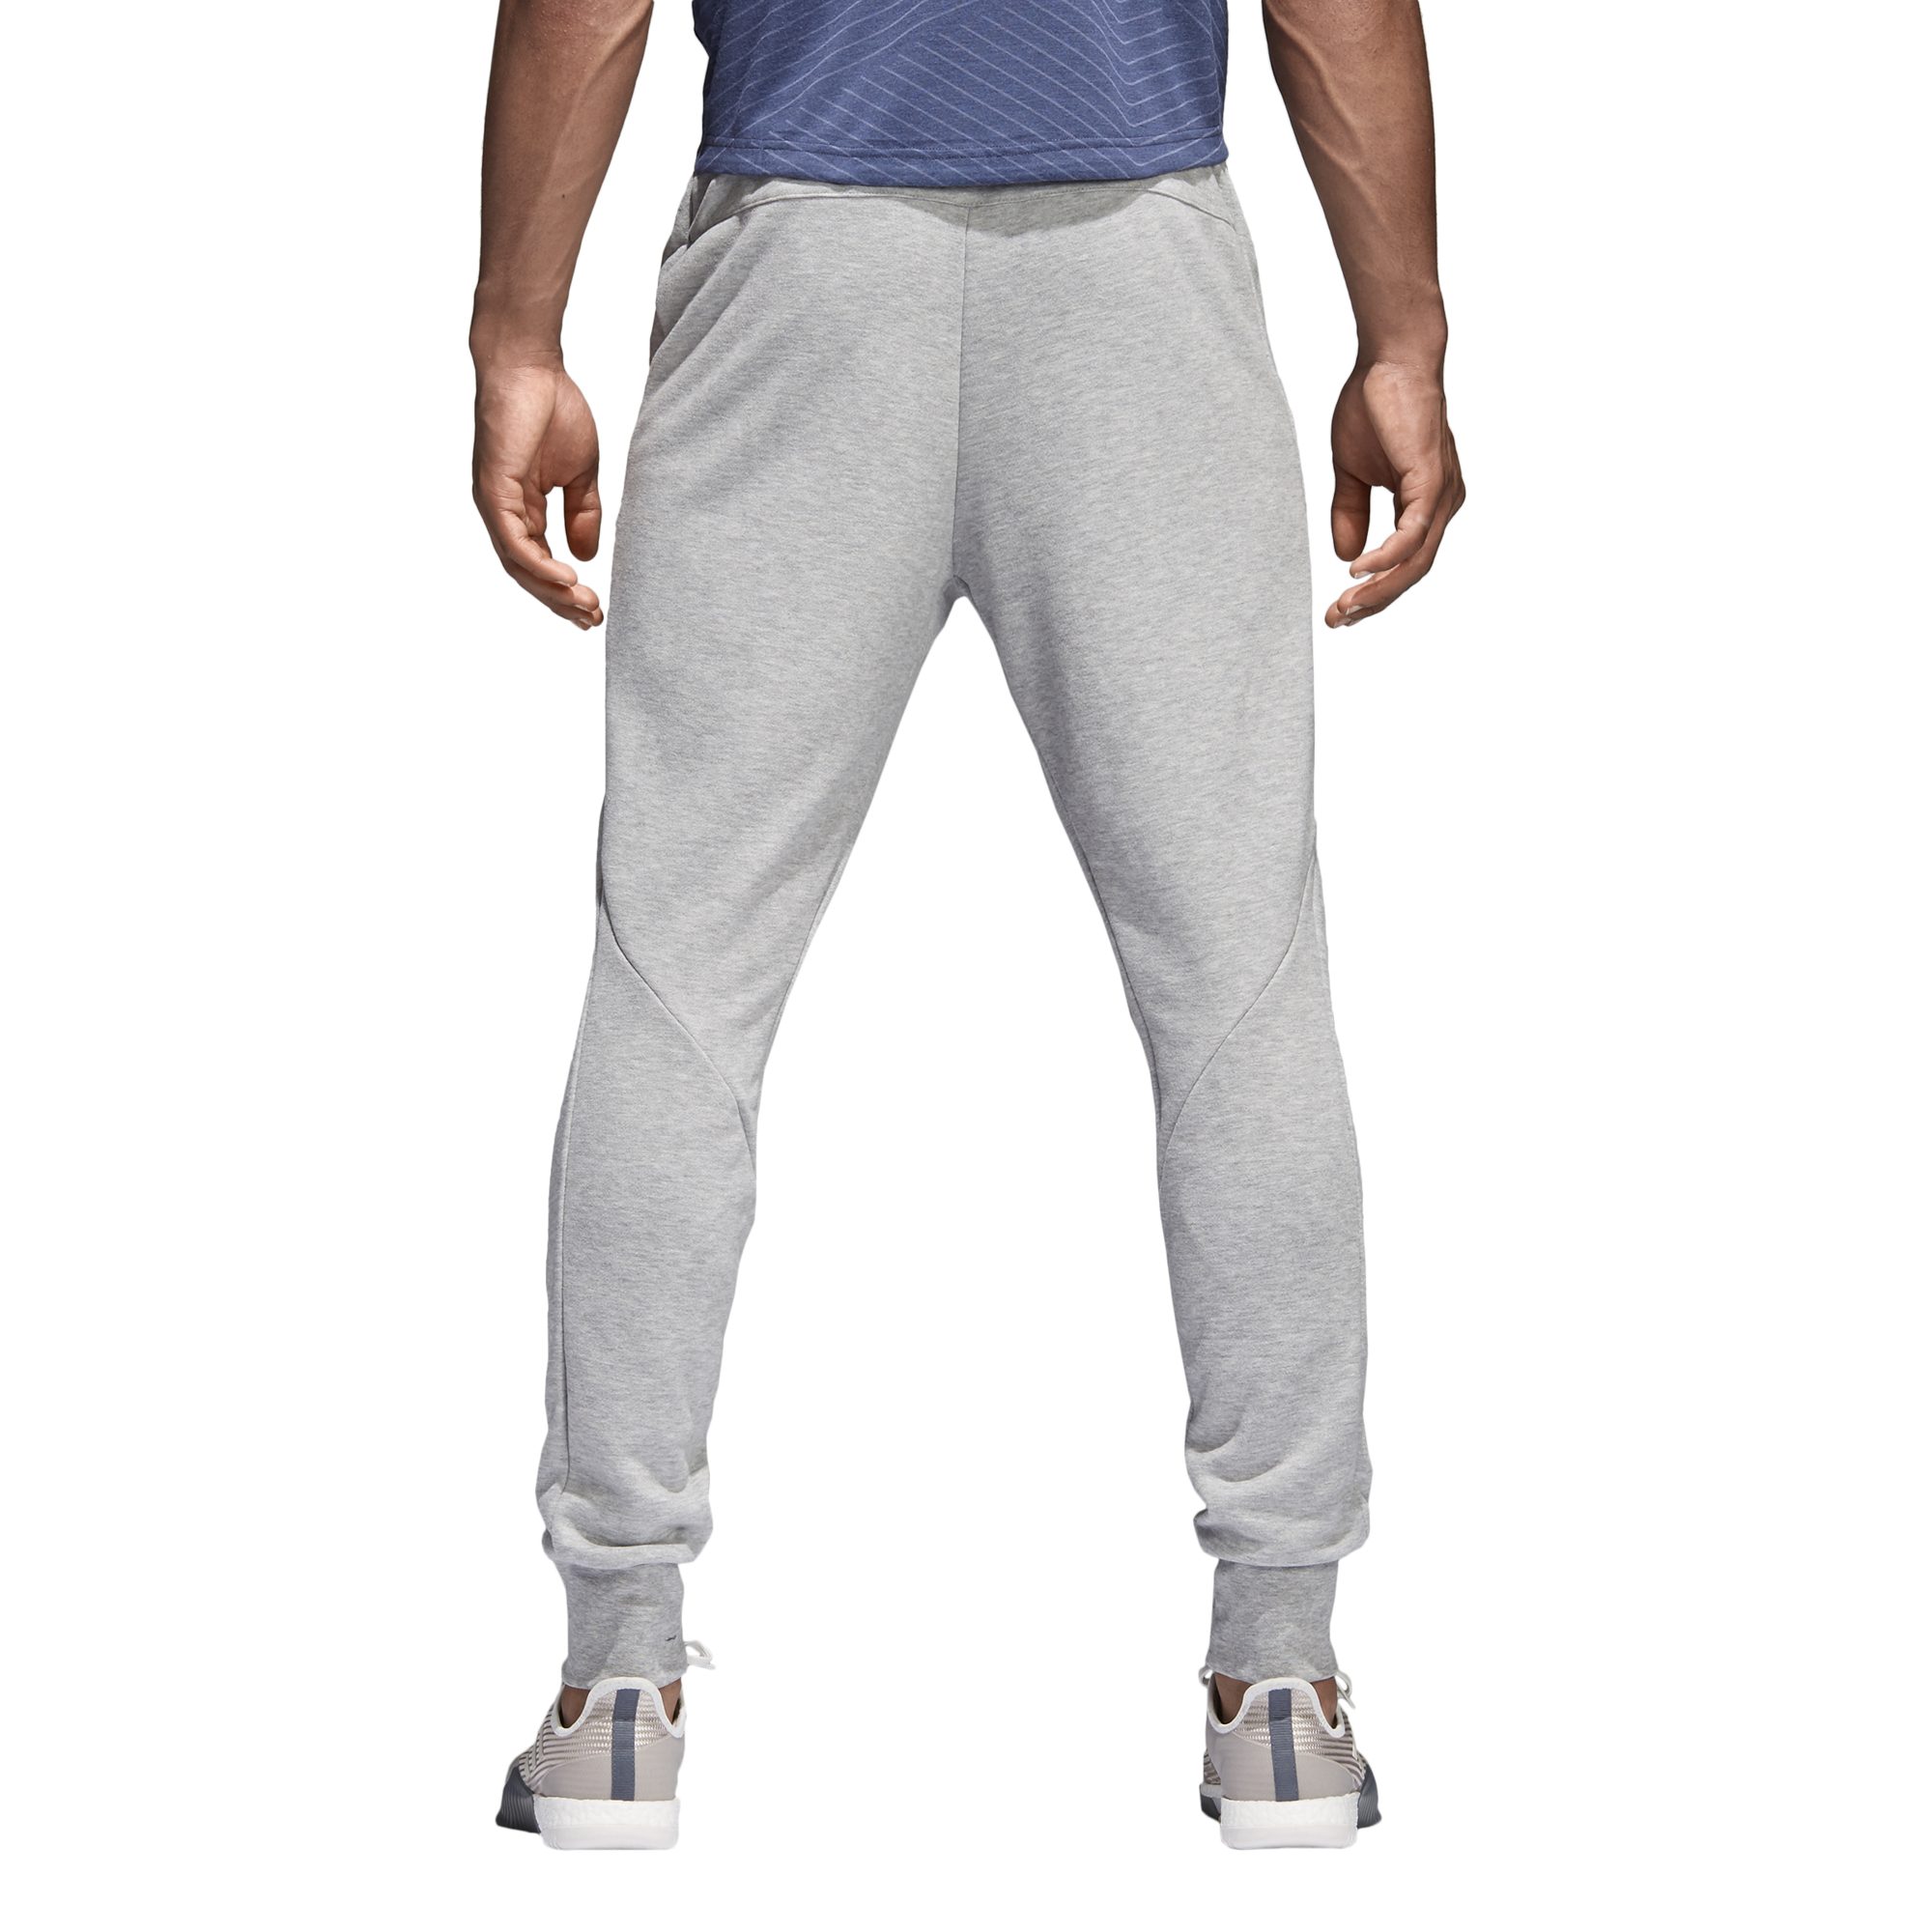 separation shoes eff85 a1839 ... spodnie adidas Workout Pant Prime CD7832 ...